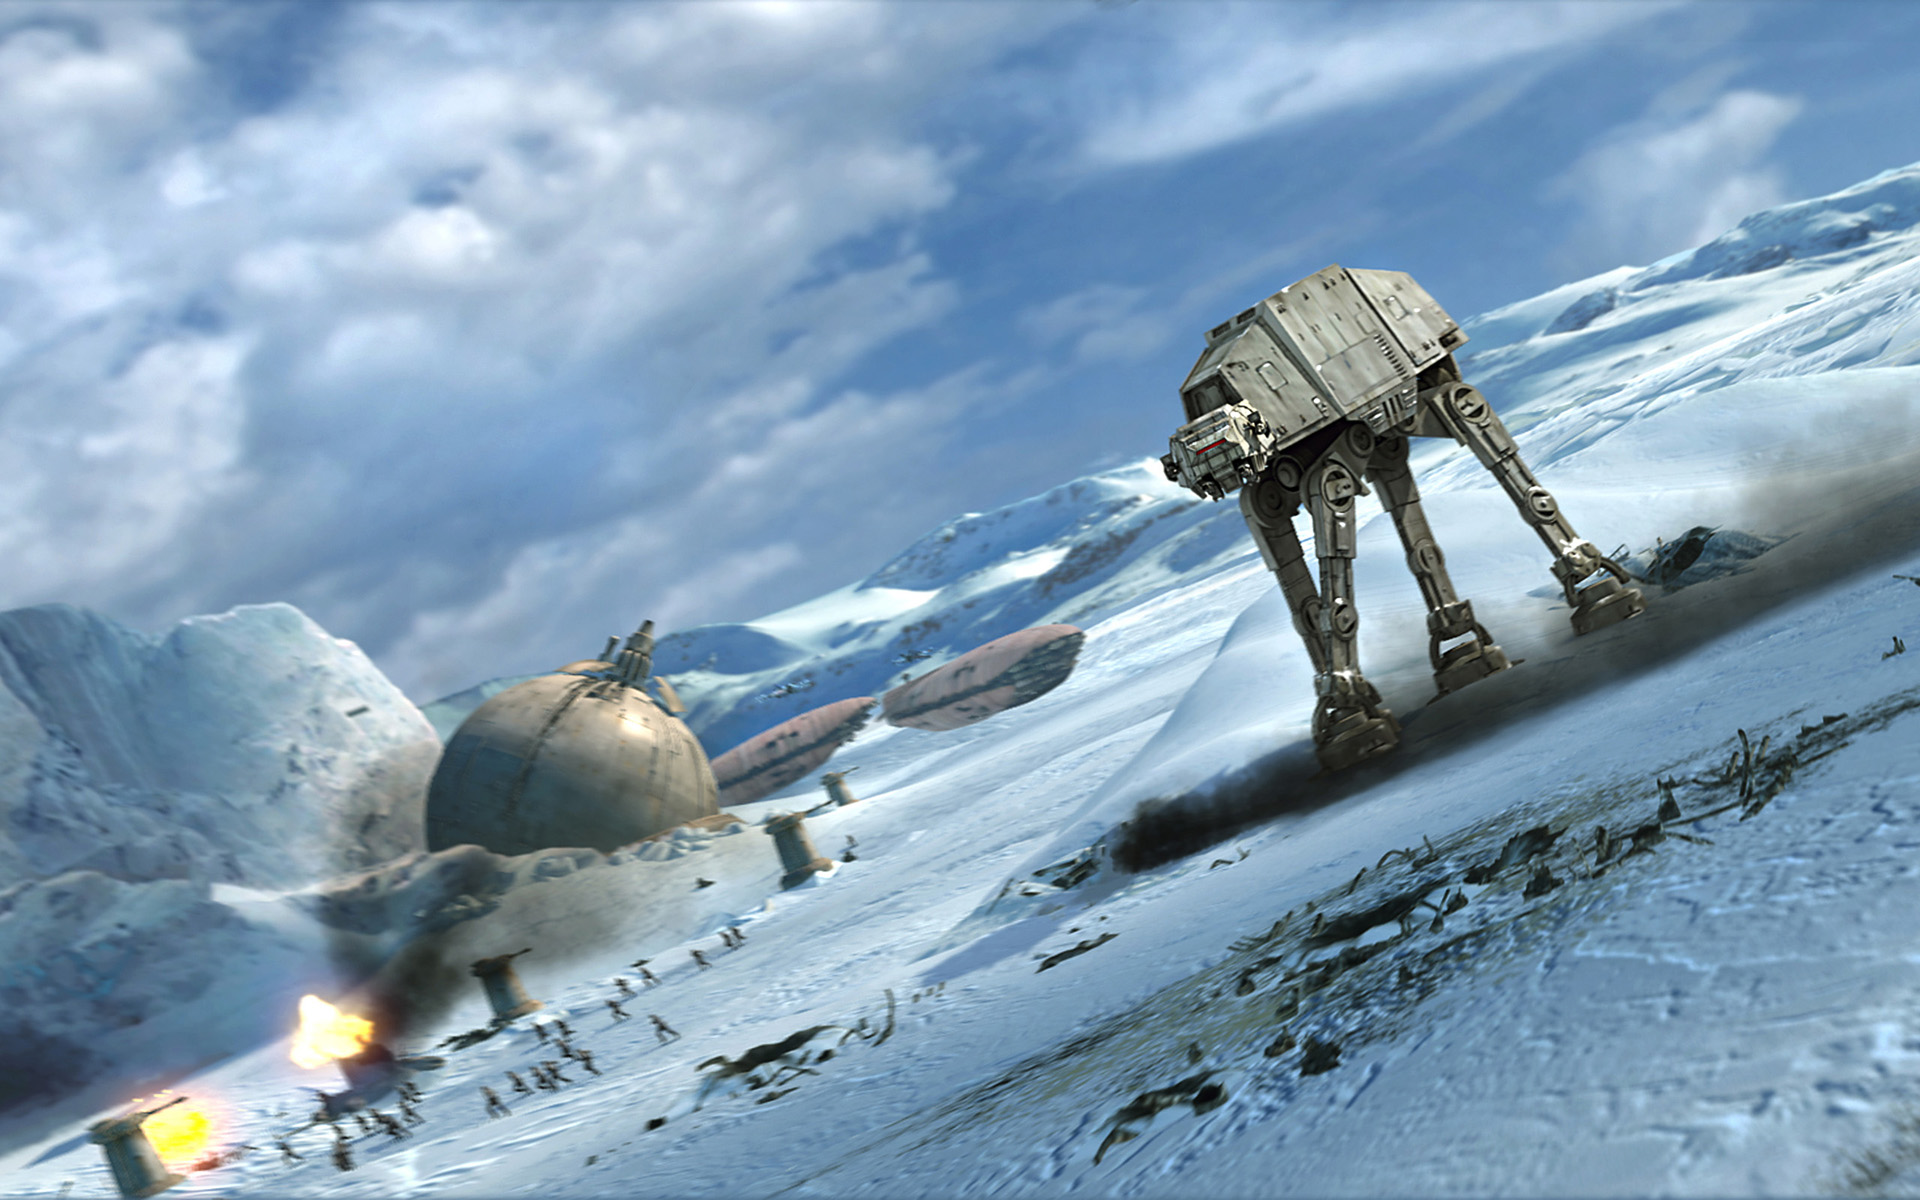 battle of hoth (0 bby) | wookieepedia | fandom powered by wikia